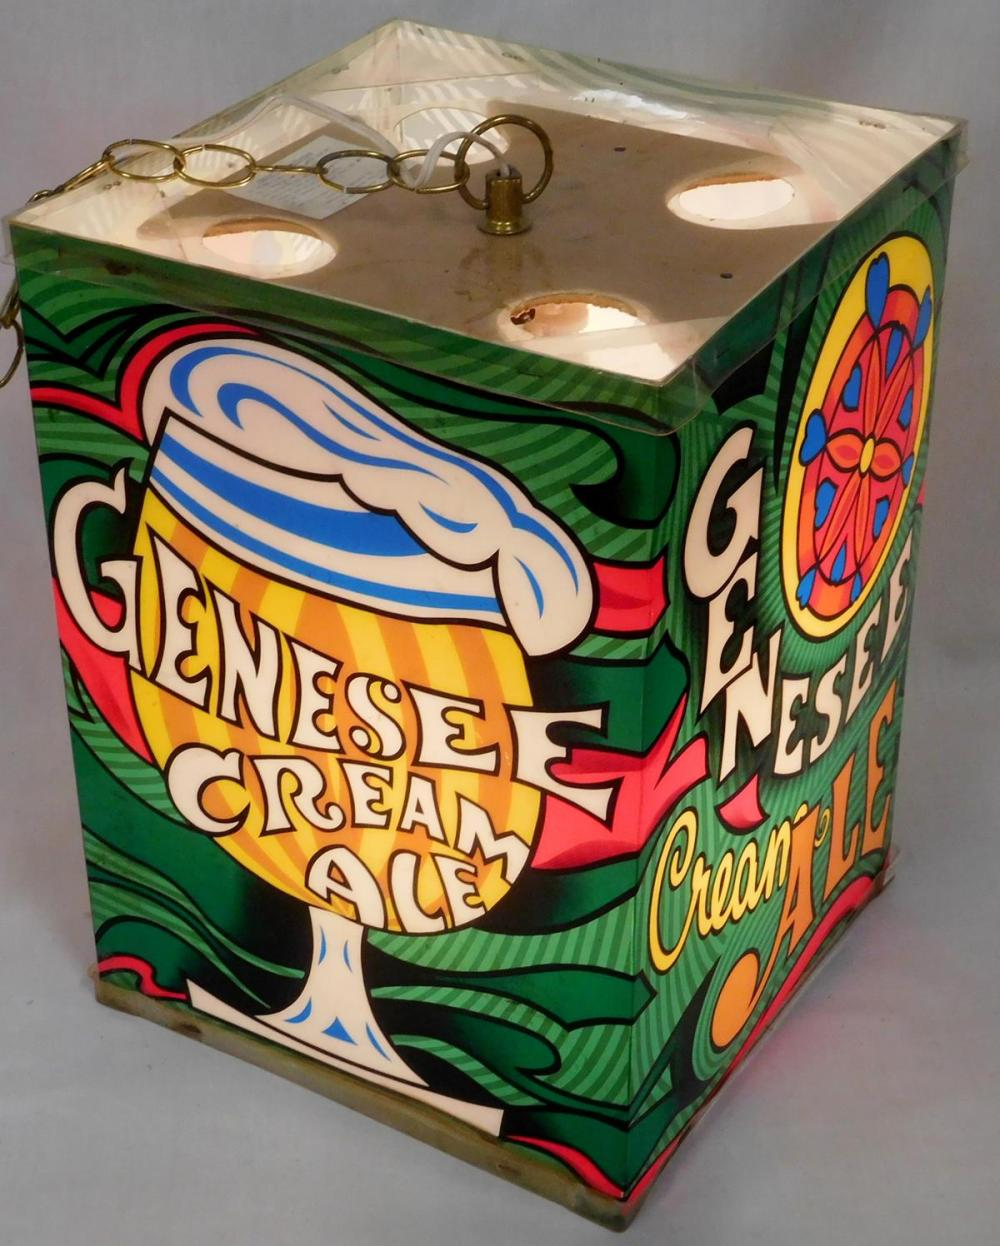 RARE Vintage 1960's Genesee Cream Ale Beer Lantern 4 Sided Hanging Rotating Lighted Sign